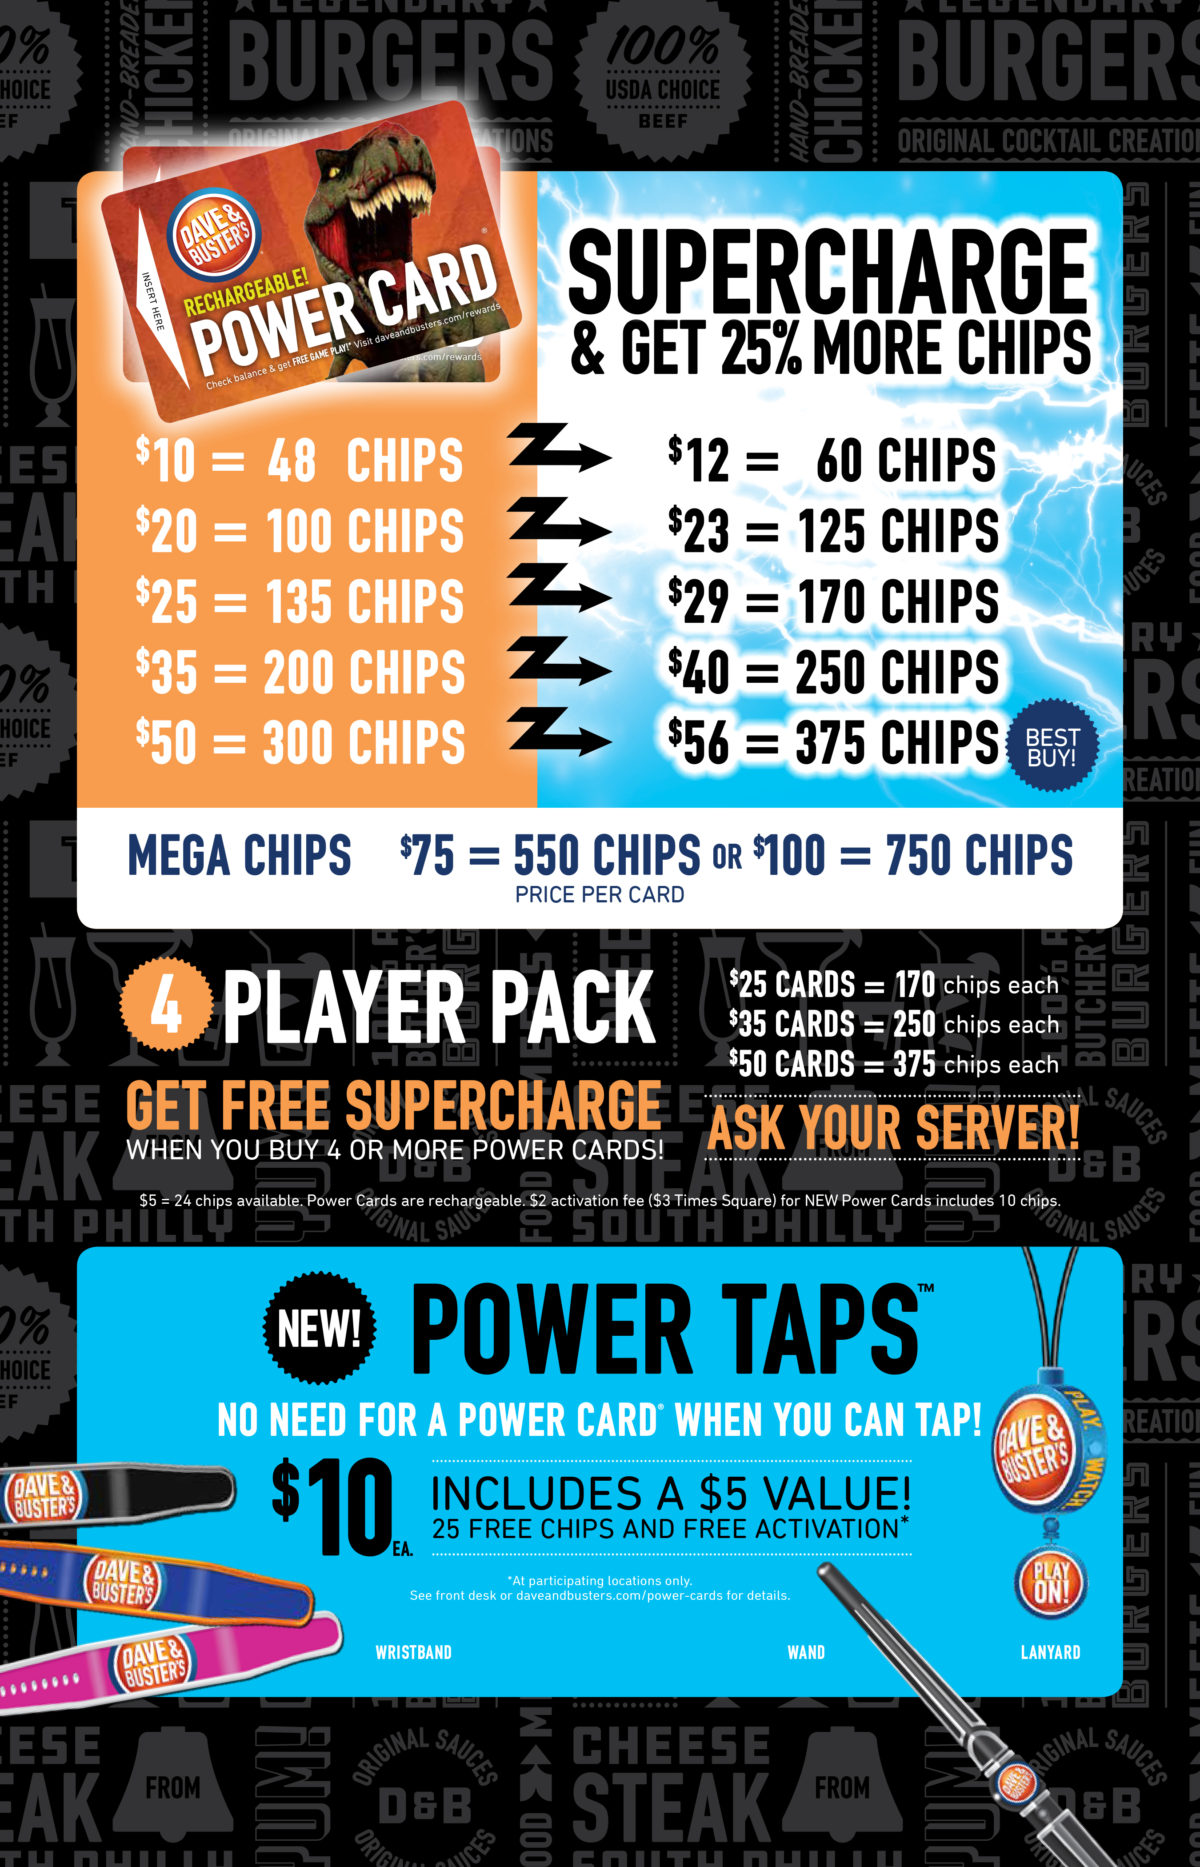 Dave & Buster's Menu Rogers Power Card Prices